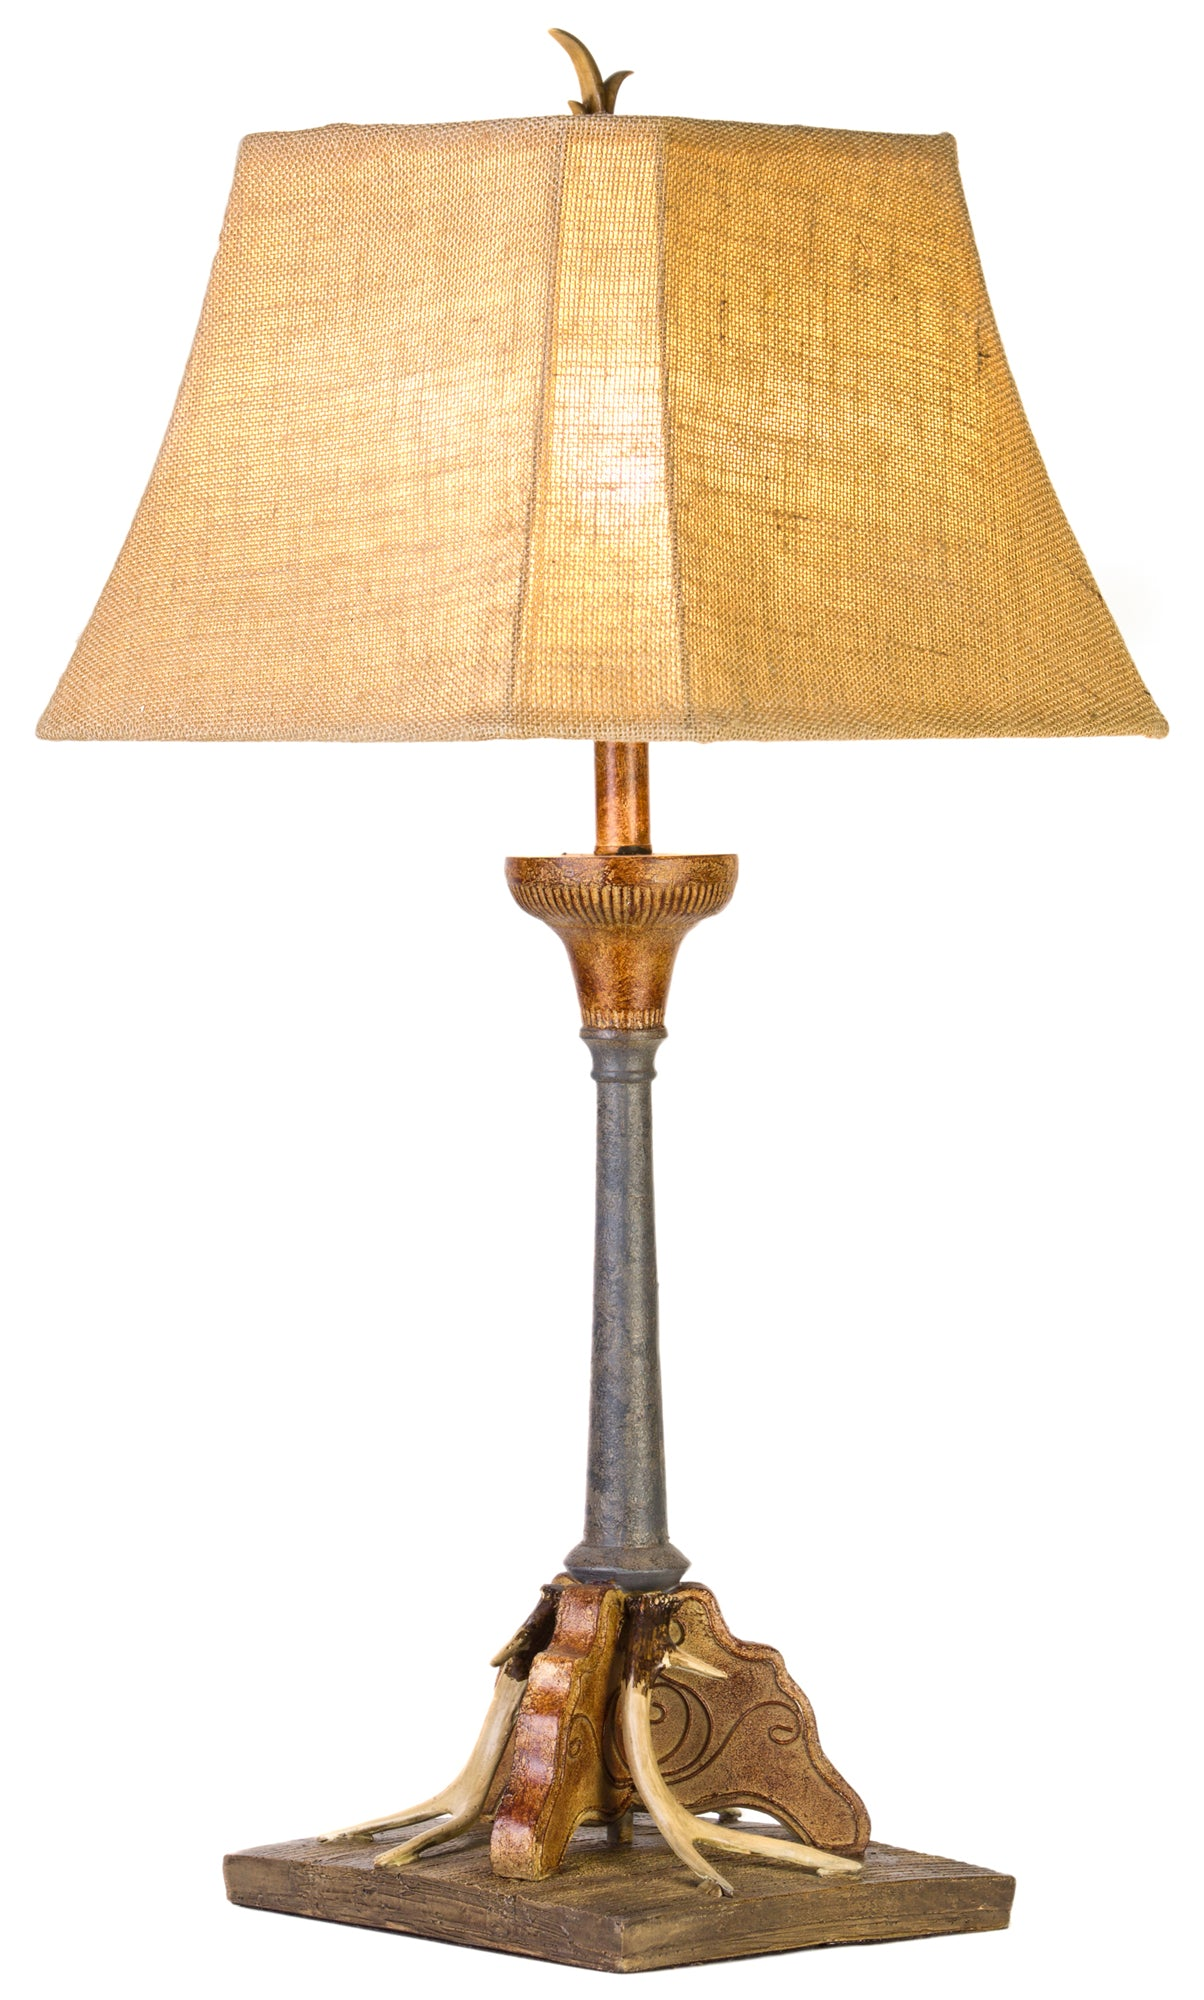 CL5050 - Antler Faux Metal Table Lamp by Vintage Direct - ThunderHorseCabin.com